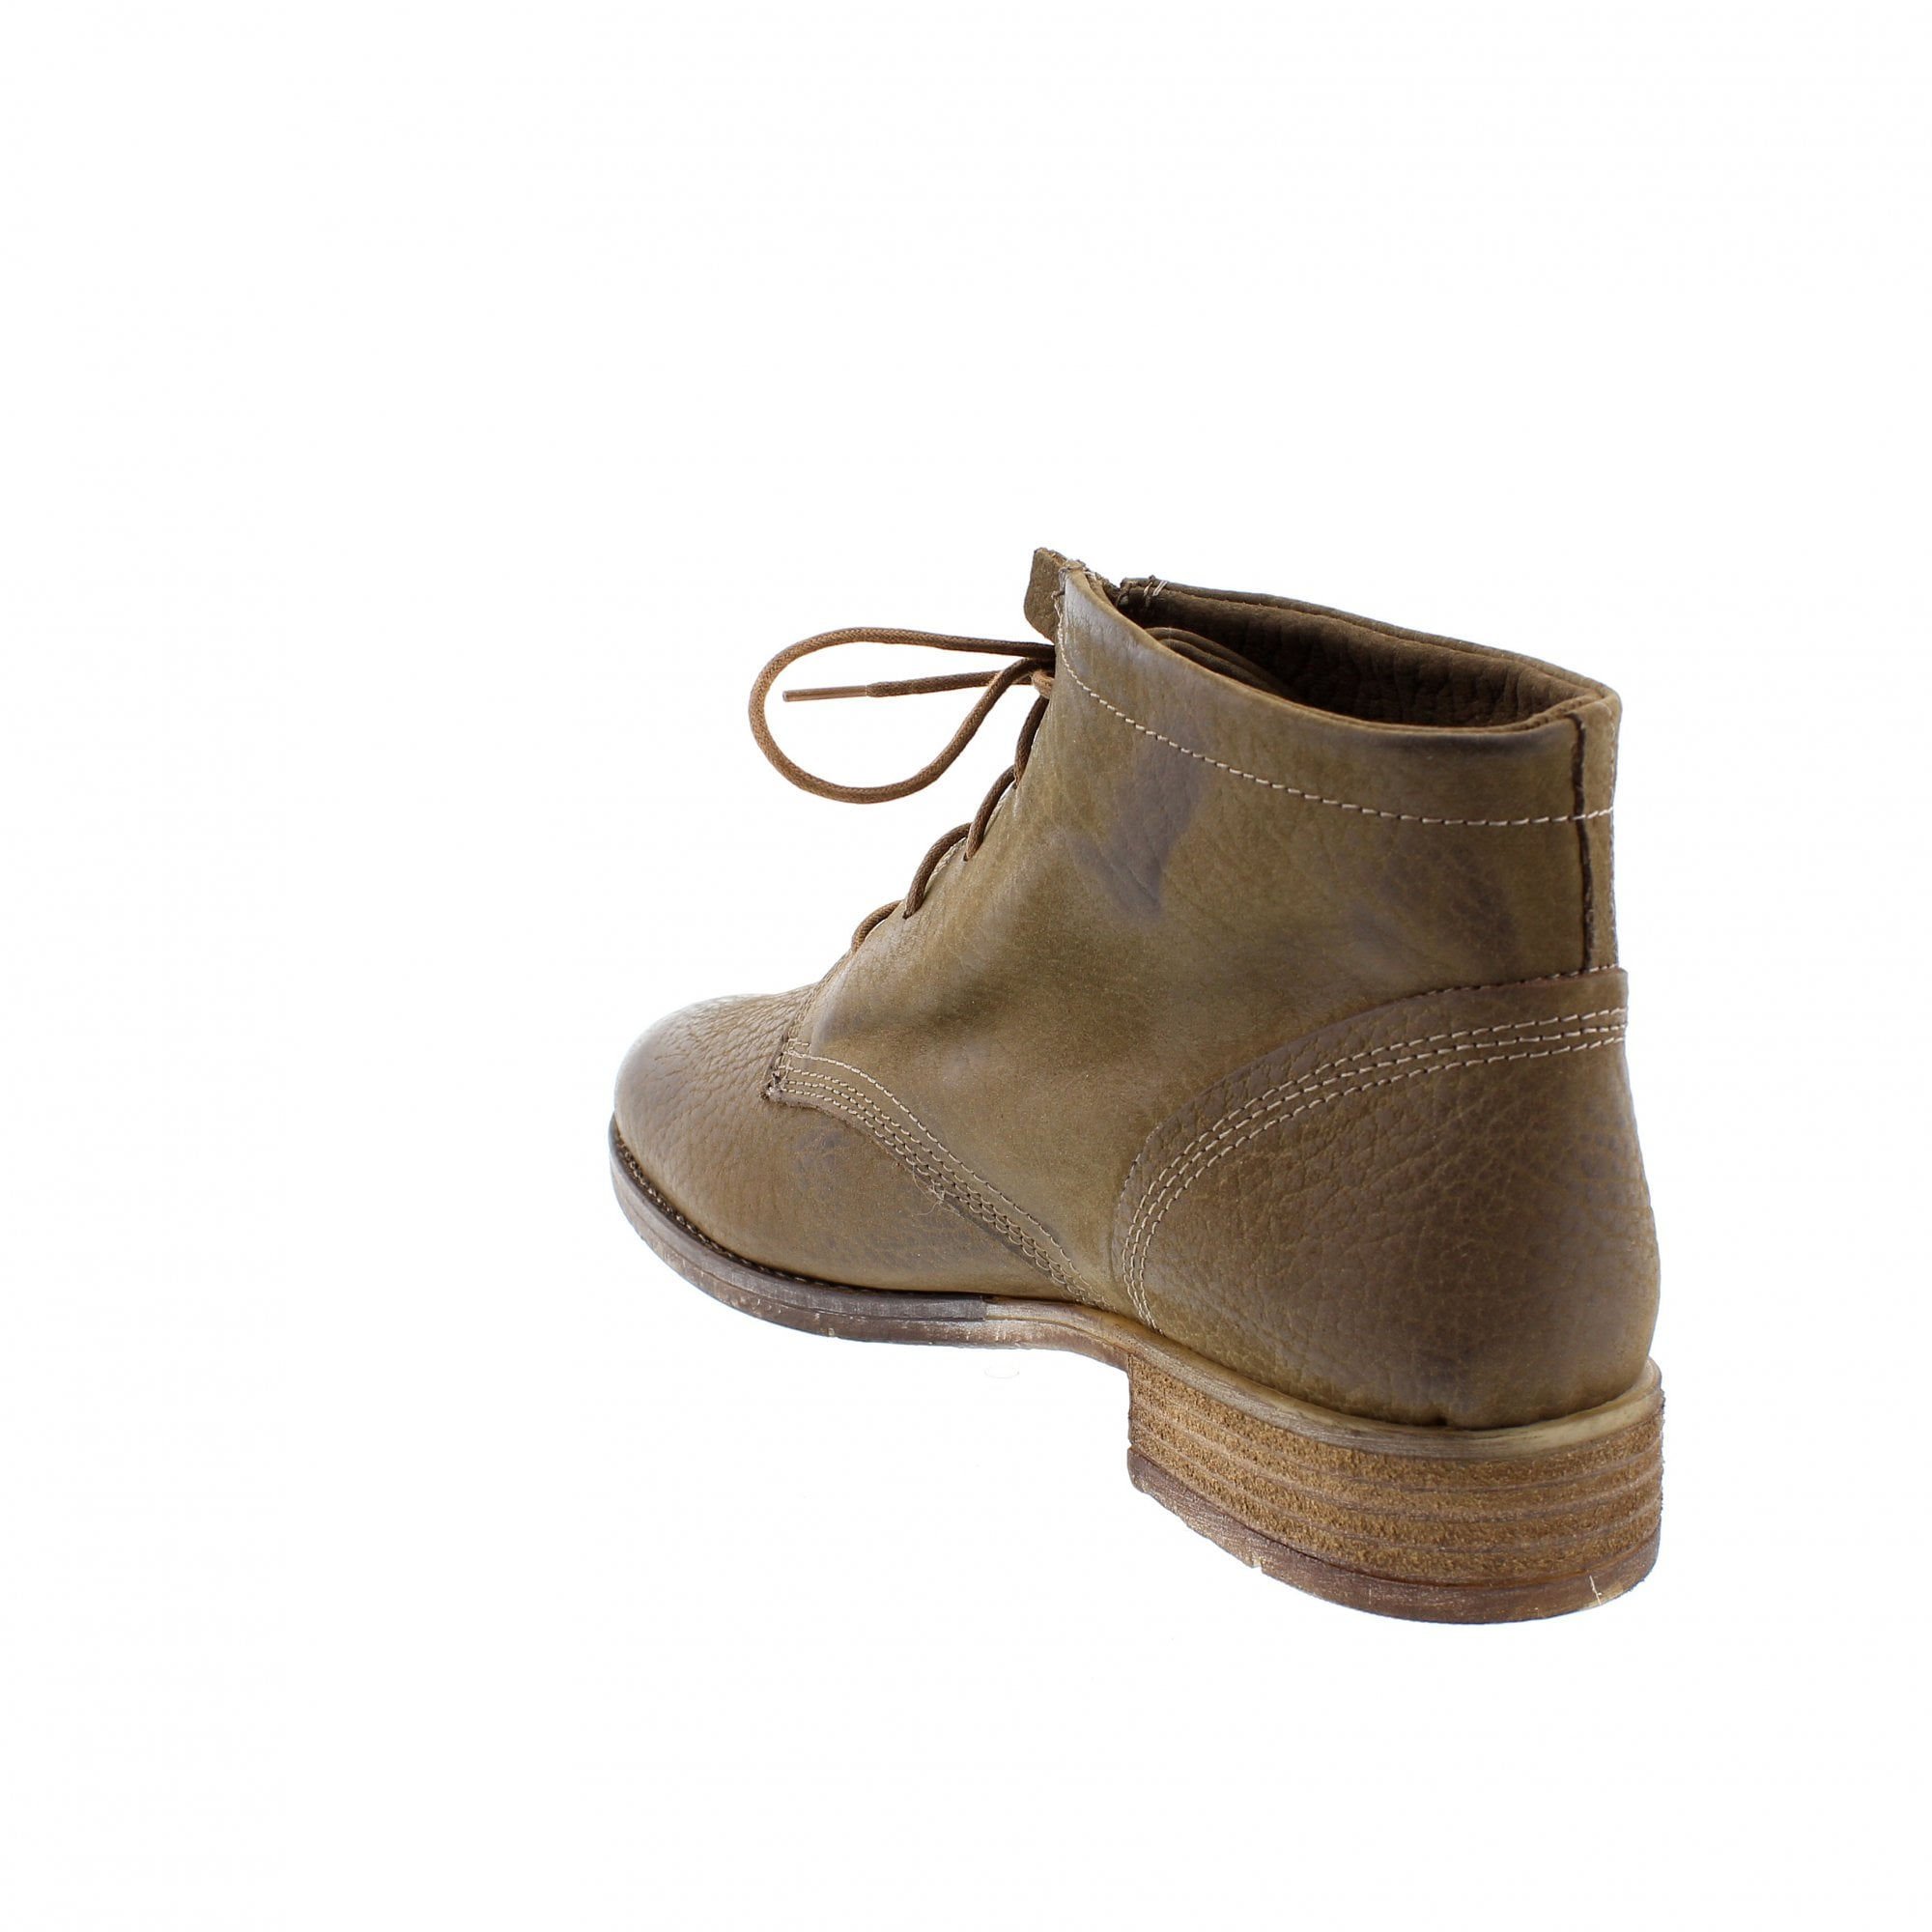 936c9316fc1bd Josef Seibel Sienna 3 Taupe Womens Ankle Boots | Rogerson Shoes